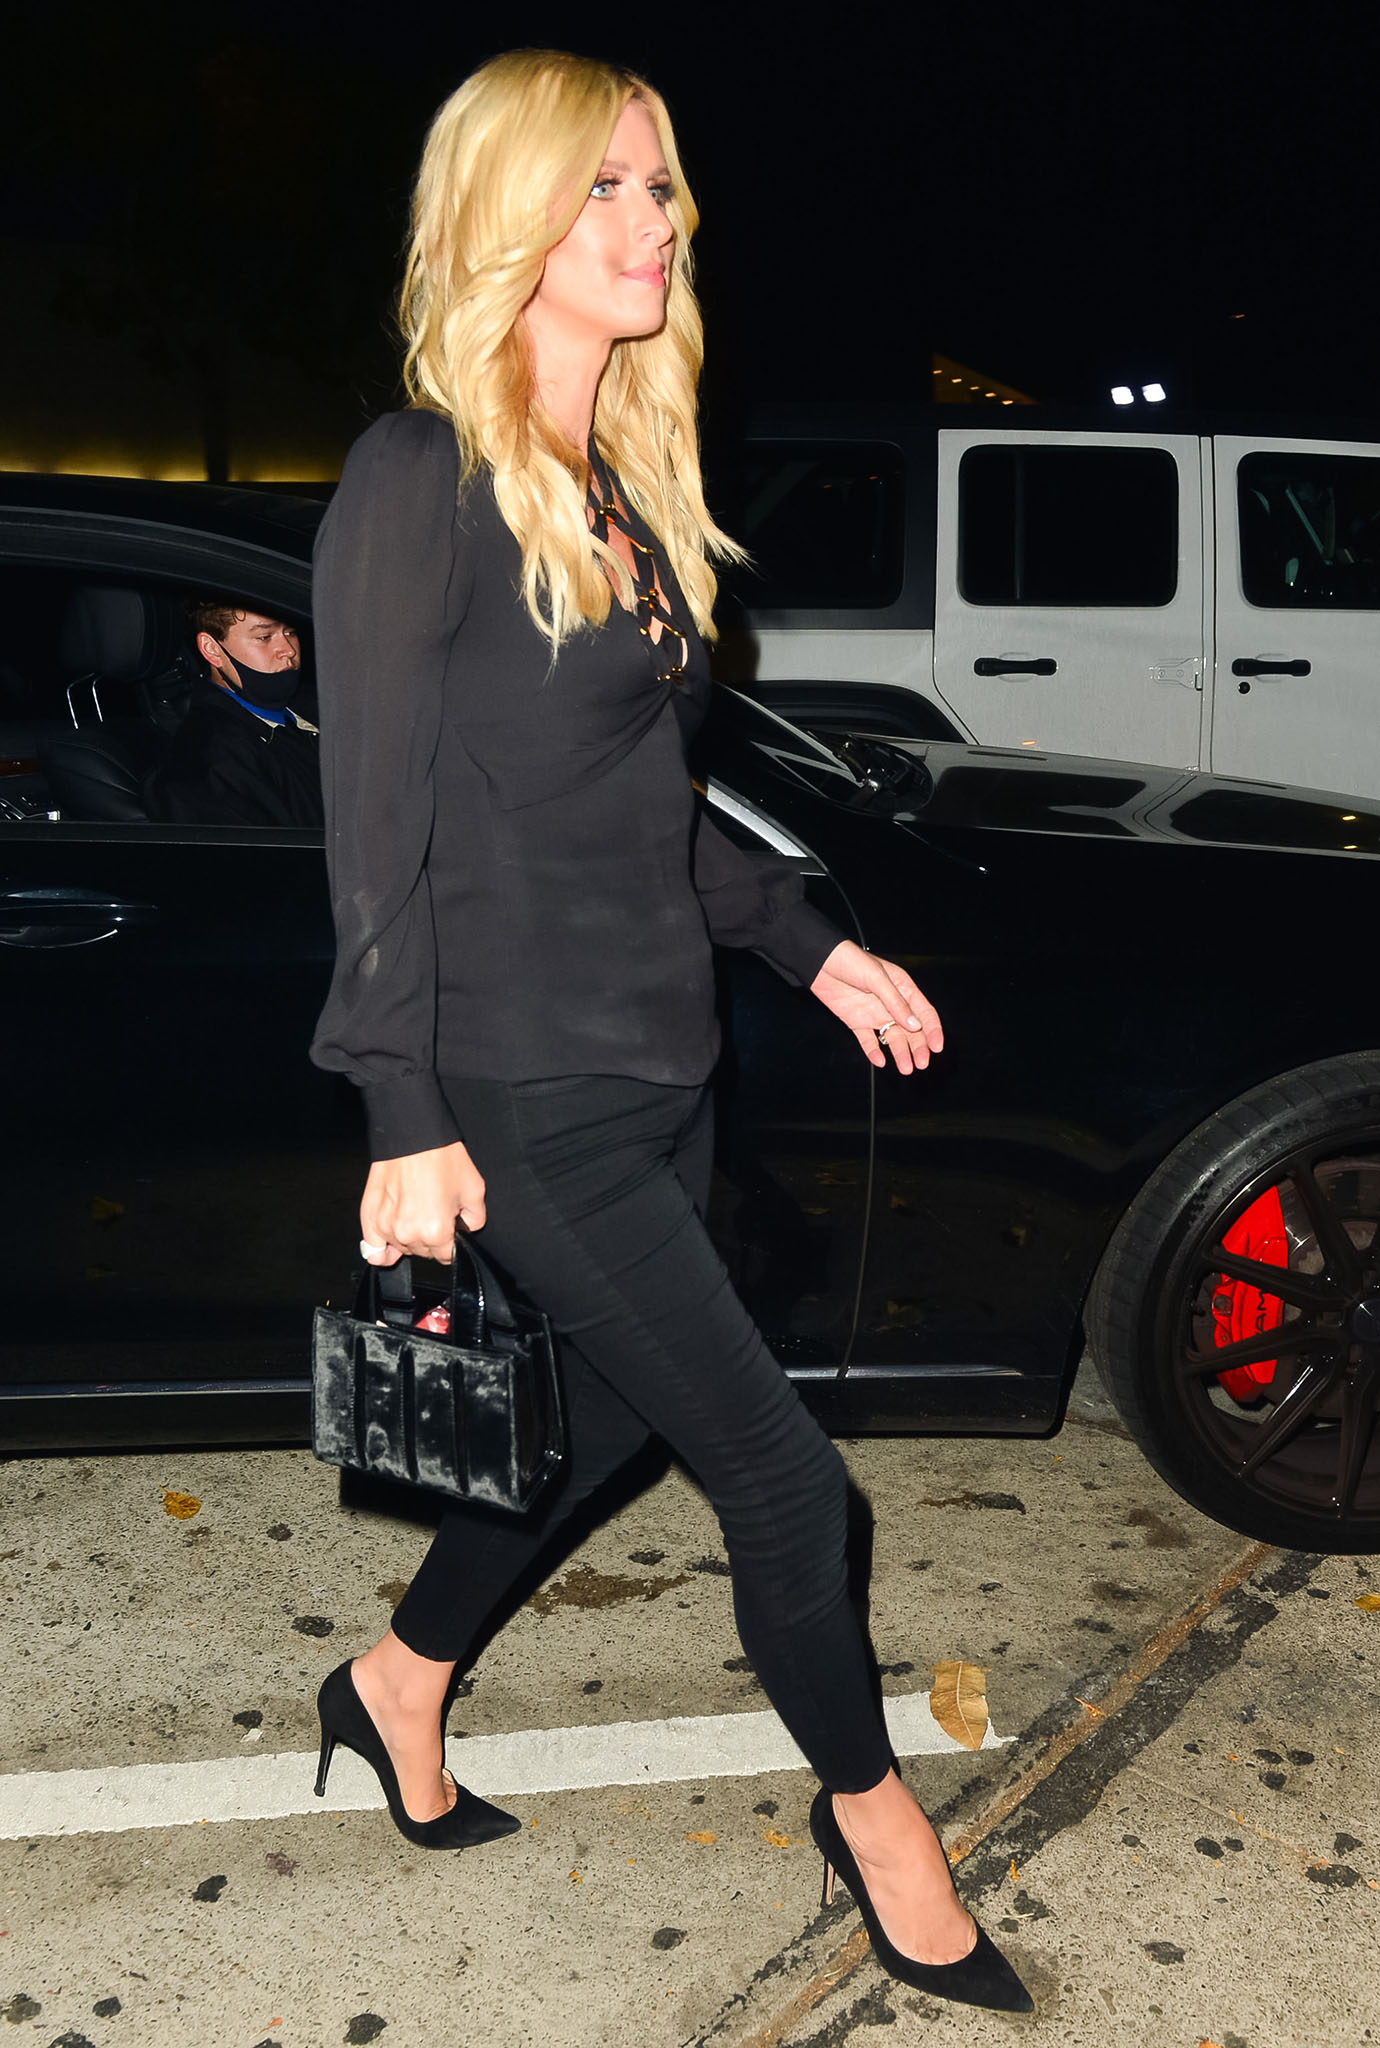 Nicky Hilton in a black lace-up blouse goes to Craig's for solo dinner